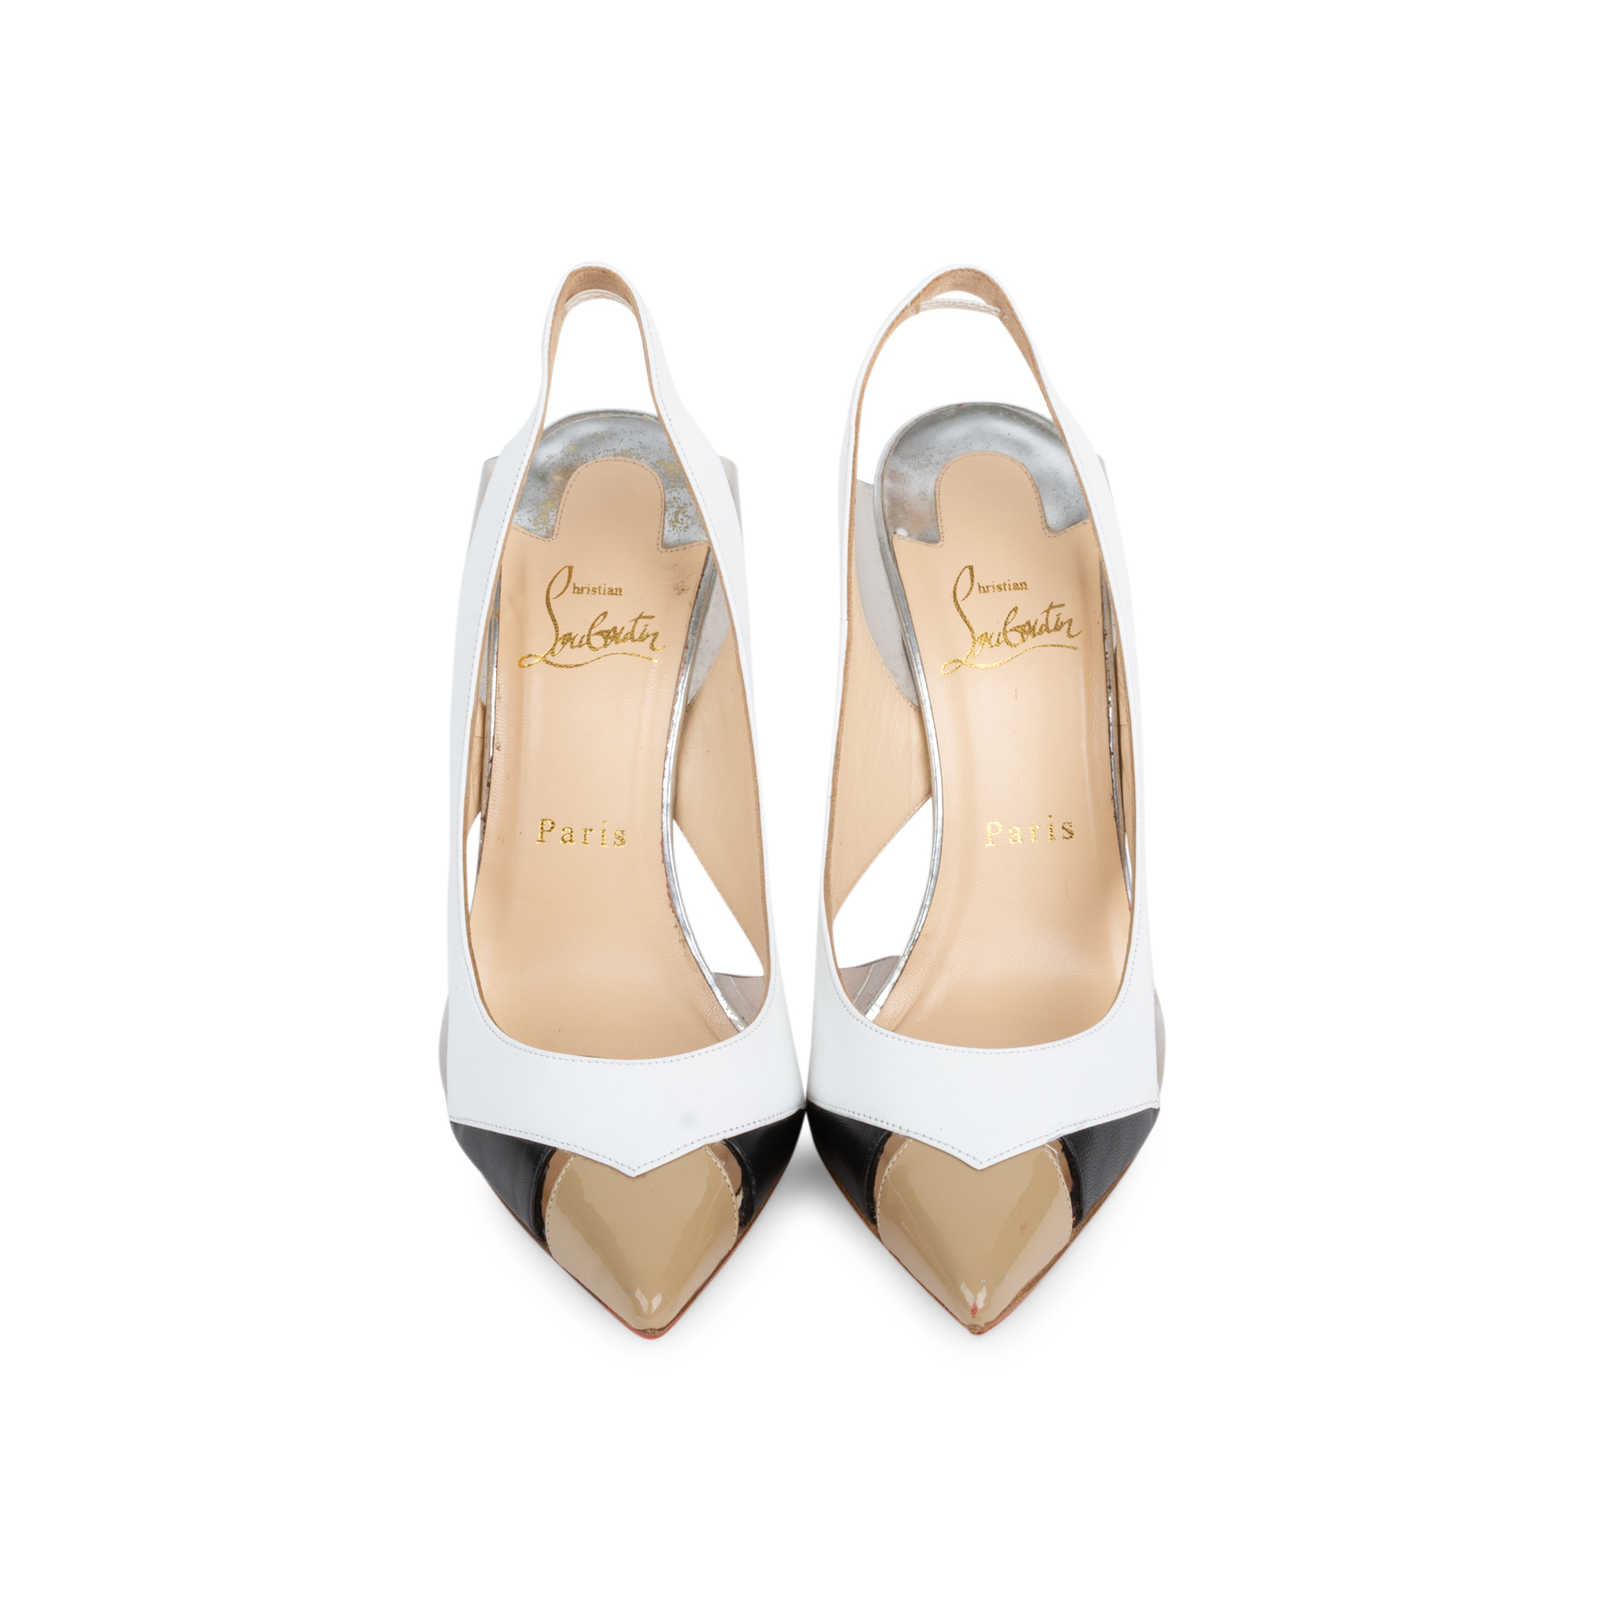 bas prix 30ee7 aa266 Authentic Second Hand Christian Louboutin Air Chance 100 ...